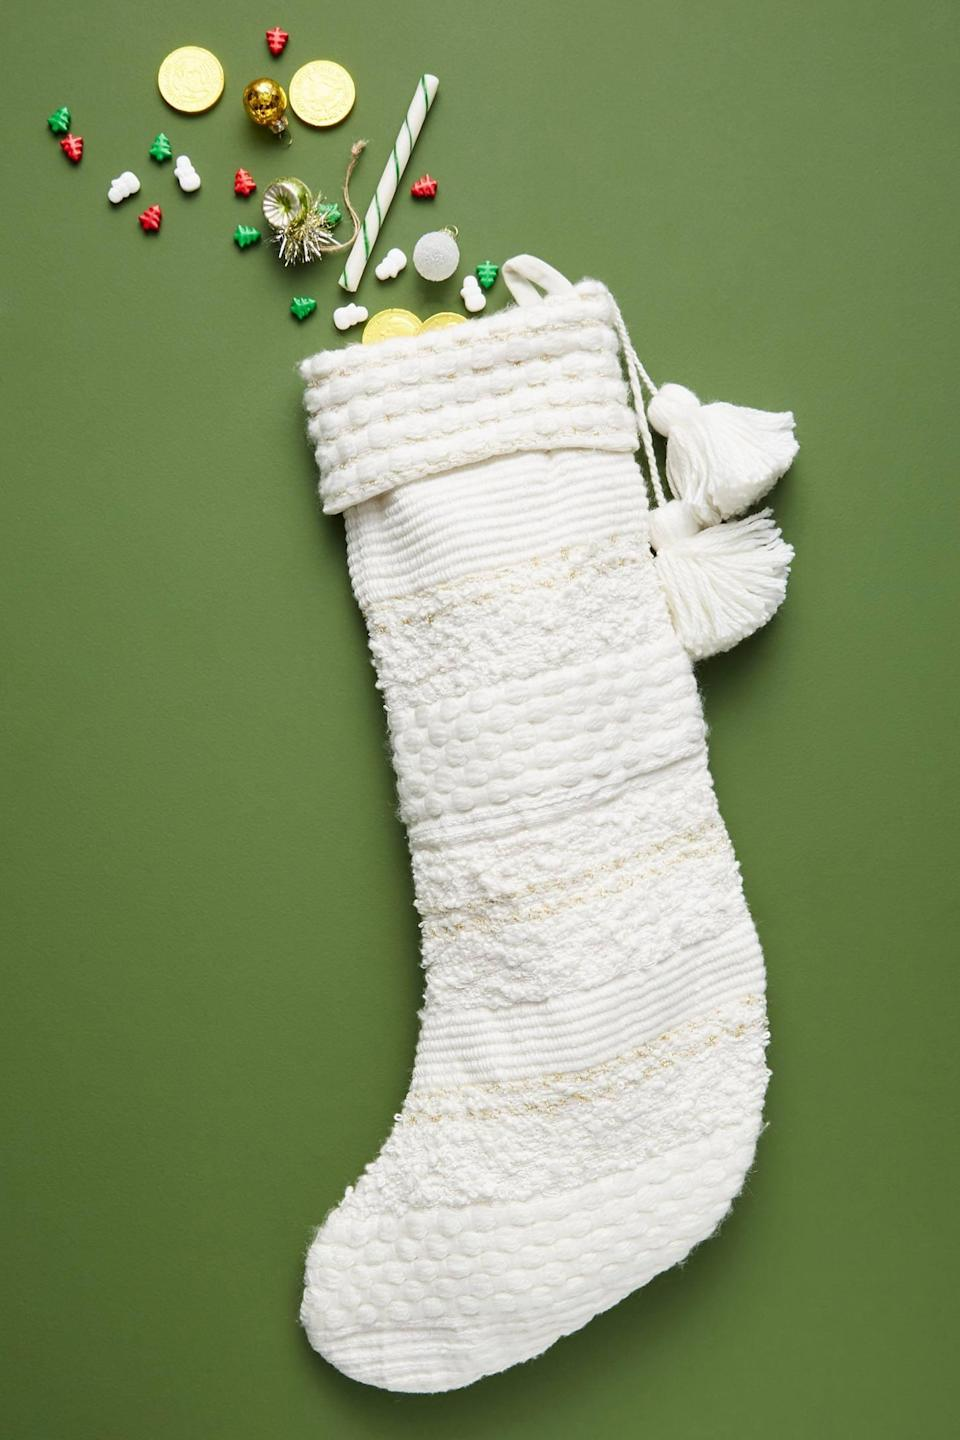 """<p>The <a href=""""https://www.popsugar.com/buy/Nicholas-Knit-Stocking-490446?p_name=Nicholas%20Knit%20Stocking&retailer=anthropologie.com&pid=490446&price=38&evar1=casa%3Aus&evar9=46615300&evar98=https%3A%2F%2Fwww.popsugar.com%2Fhome%2Fphoto-gallery%2F46615300%2Fimage%2F46615316%2FNicholas-Knit-Stocking&list1=shopping%2Canthropologie%2Choliday%2Cchristmas%2Cchristmas%20decorations%2Choliday%20decor%2Chome%20shopping&prop13=mobile&pdata=1"""" rel=""""nofollow noopener"""" class=""""link rapid-noclick-resp"""" target=""""_blank"""" data-ylk=""""slk:Nicholas Knit Stocking"""">Nicholas Knit Stocking</a> ($38) is simple yet elegant. </p>"""